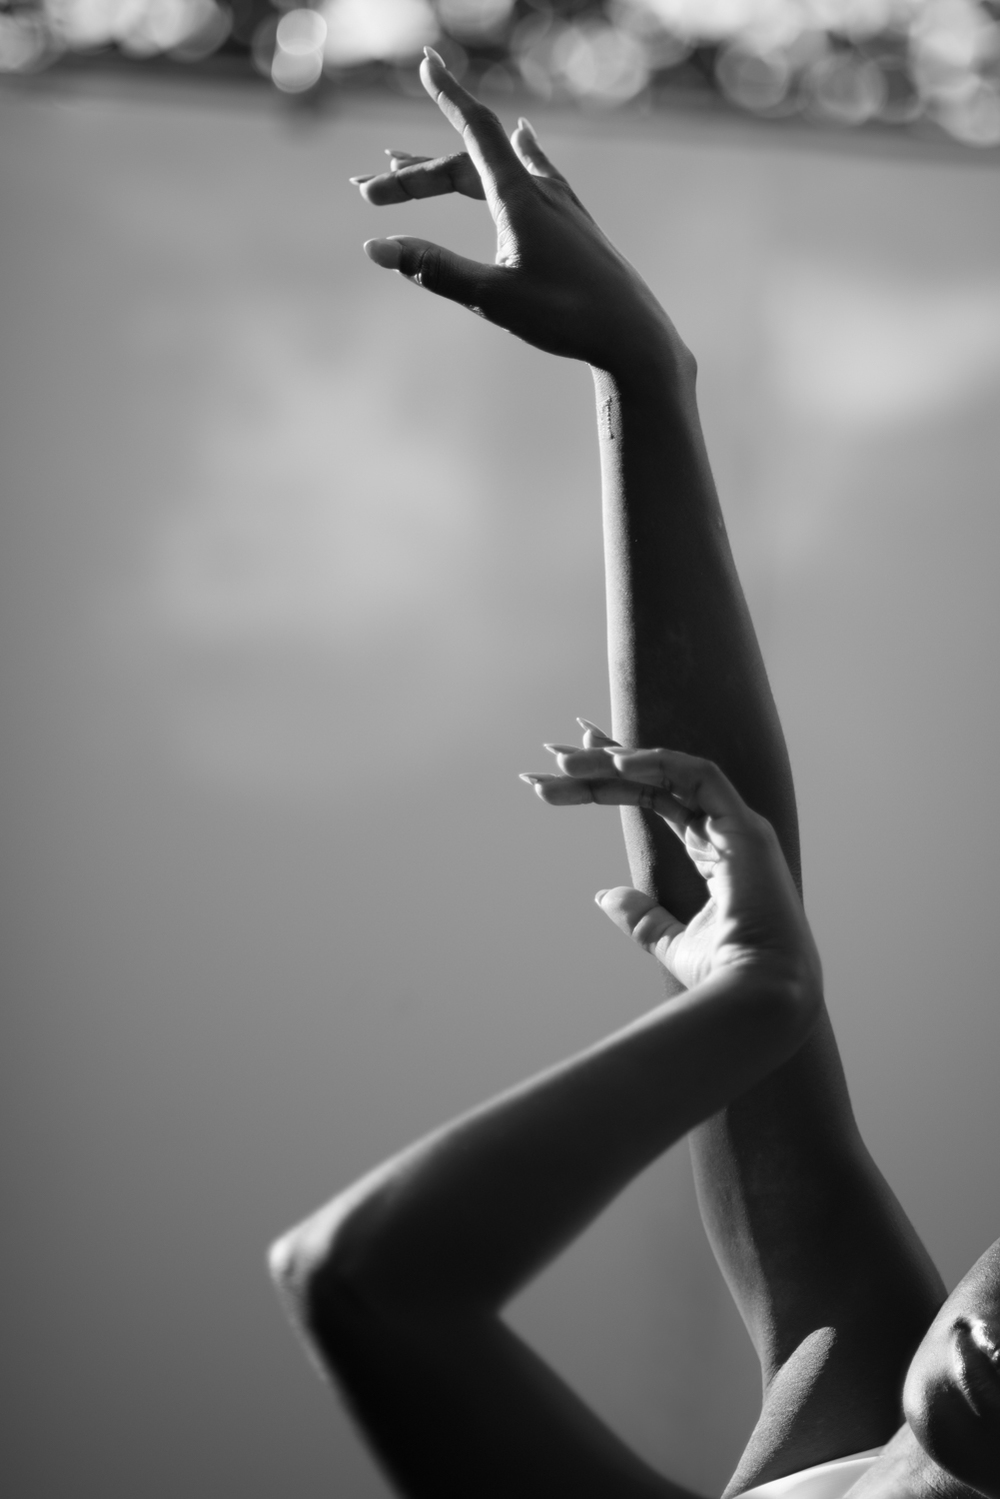 Michaela DePrince, Dancer for the Dutch National Ballet. Featured in Vogue.it